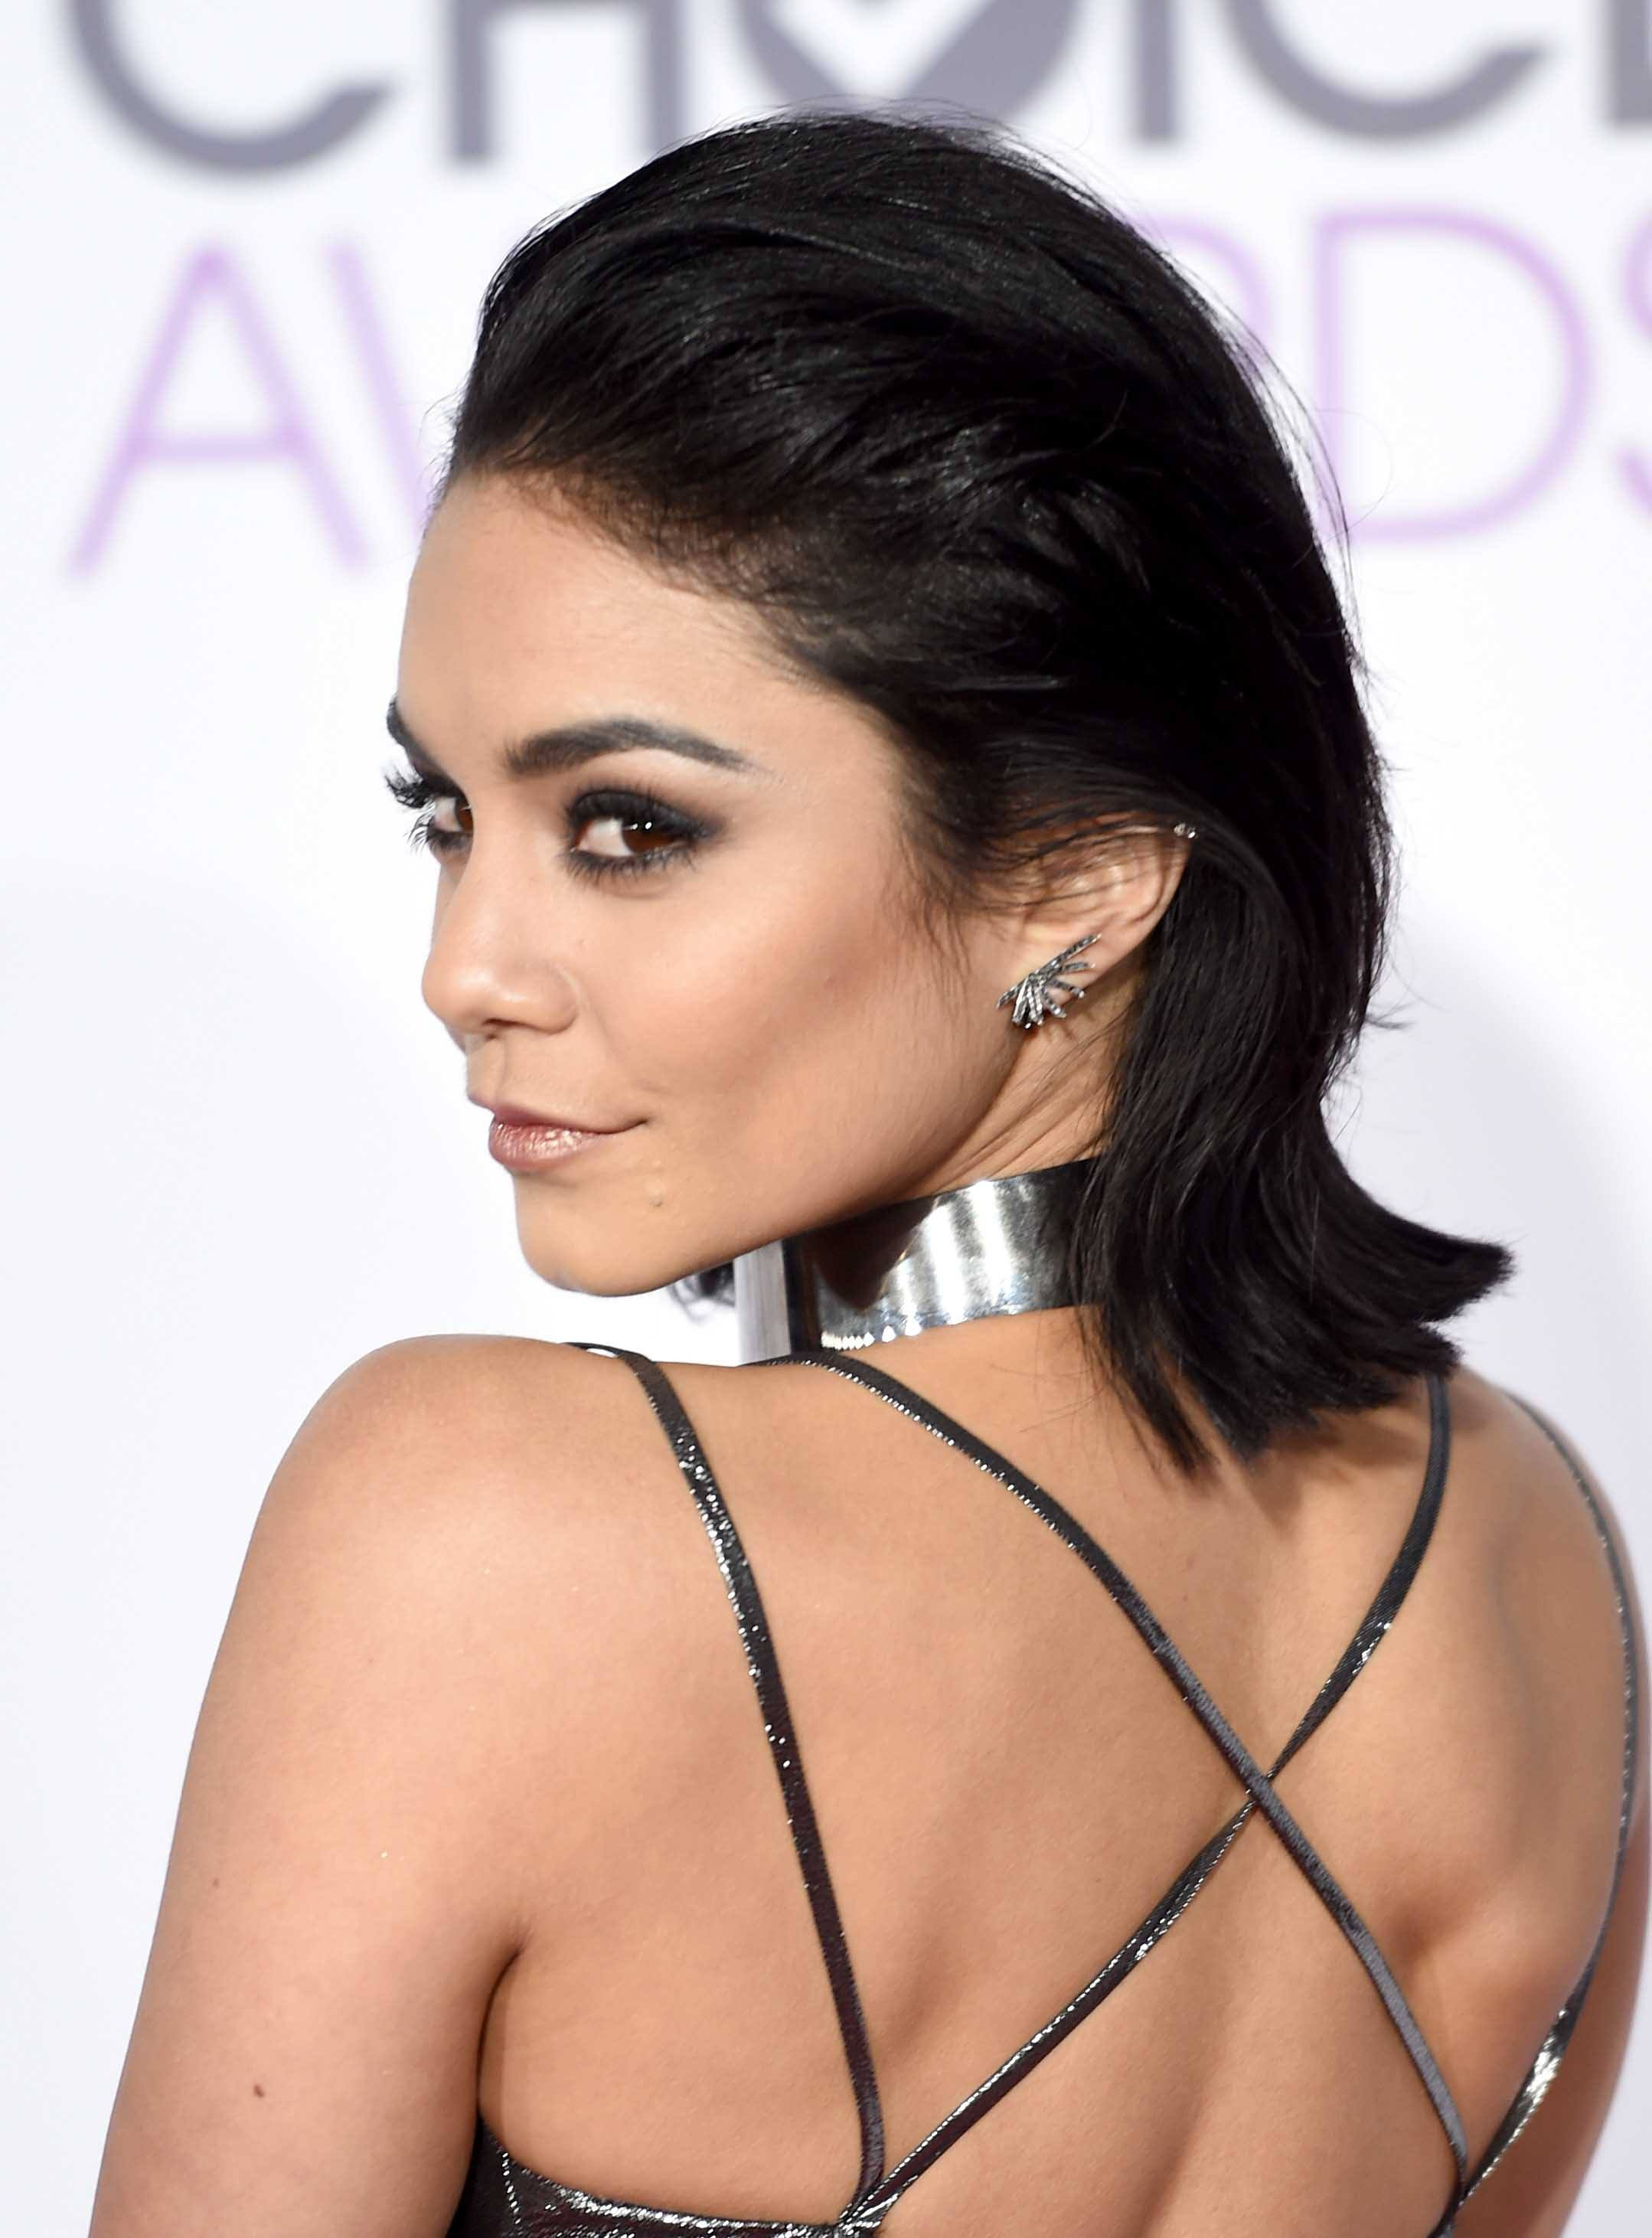 celebrity hair: All Things Hair - IMAGE - 2016 Vanessa Hudgens brunette slick back bob